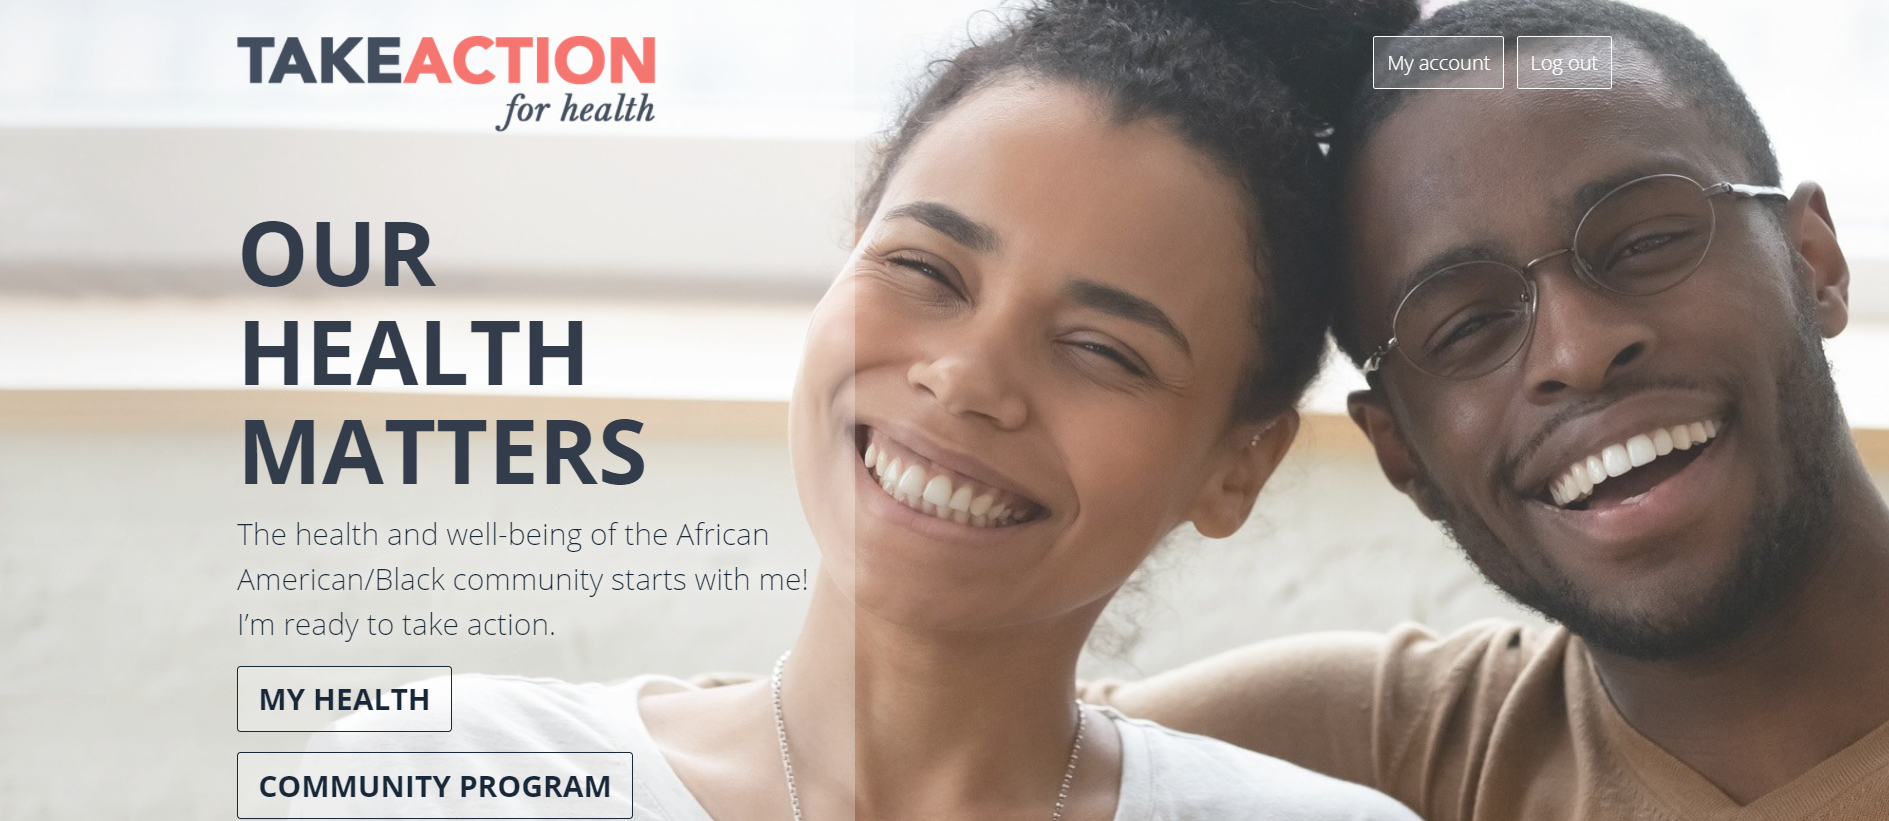 Take Action for Health: New Online Resource Exclusively for the African American Community